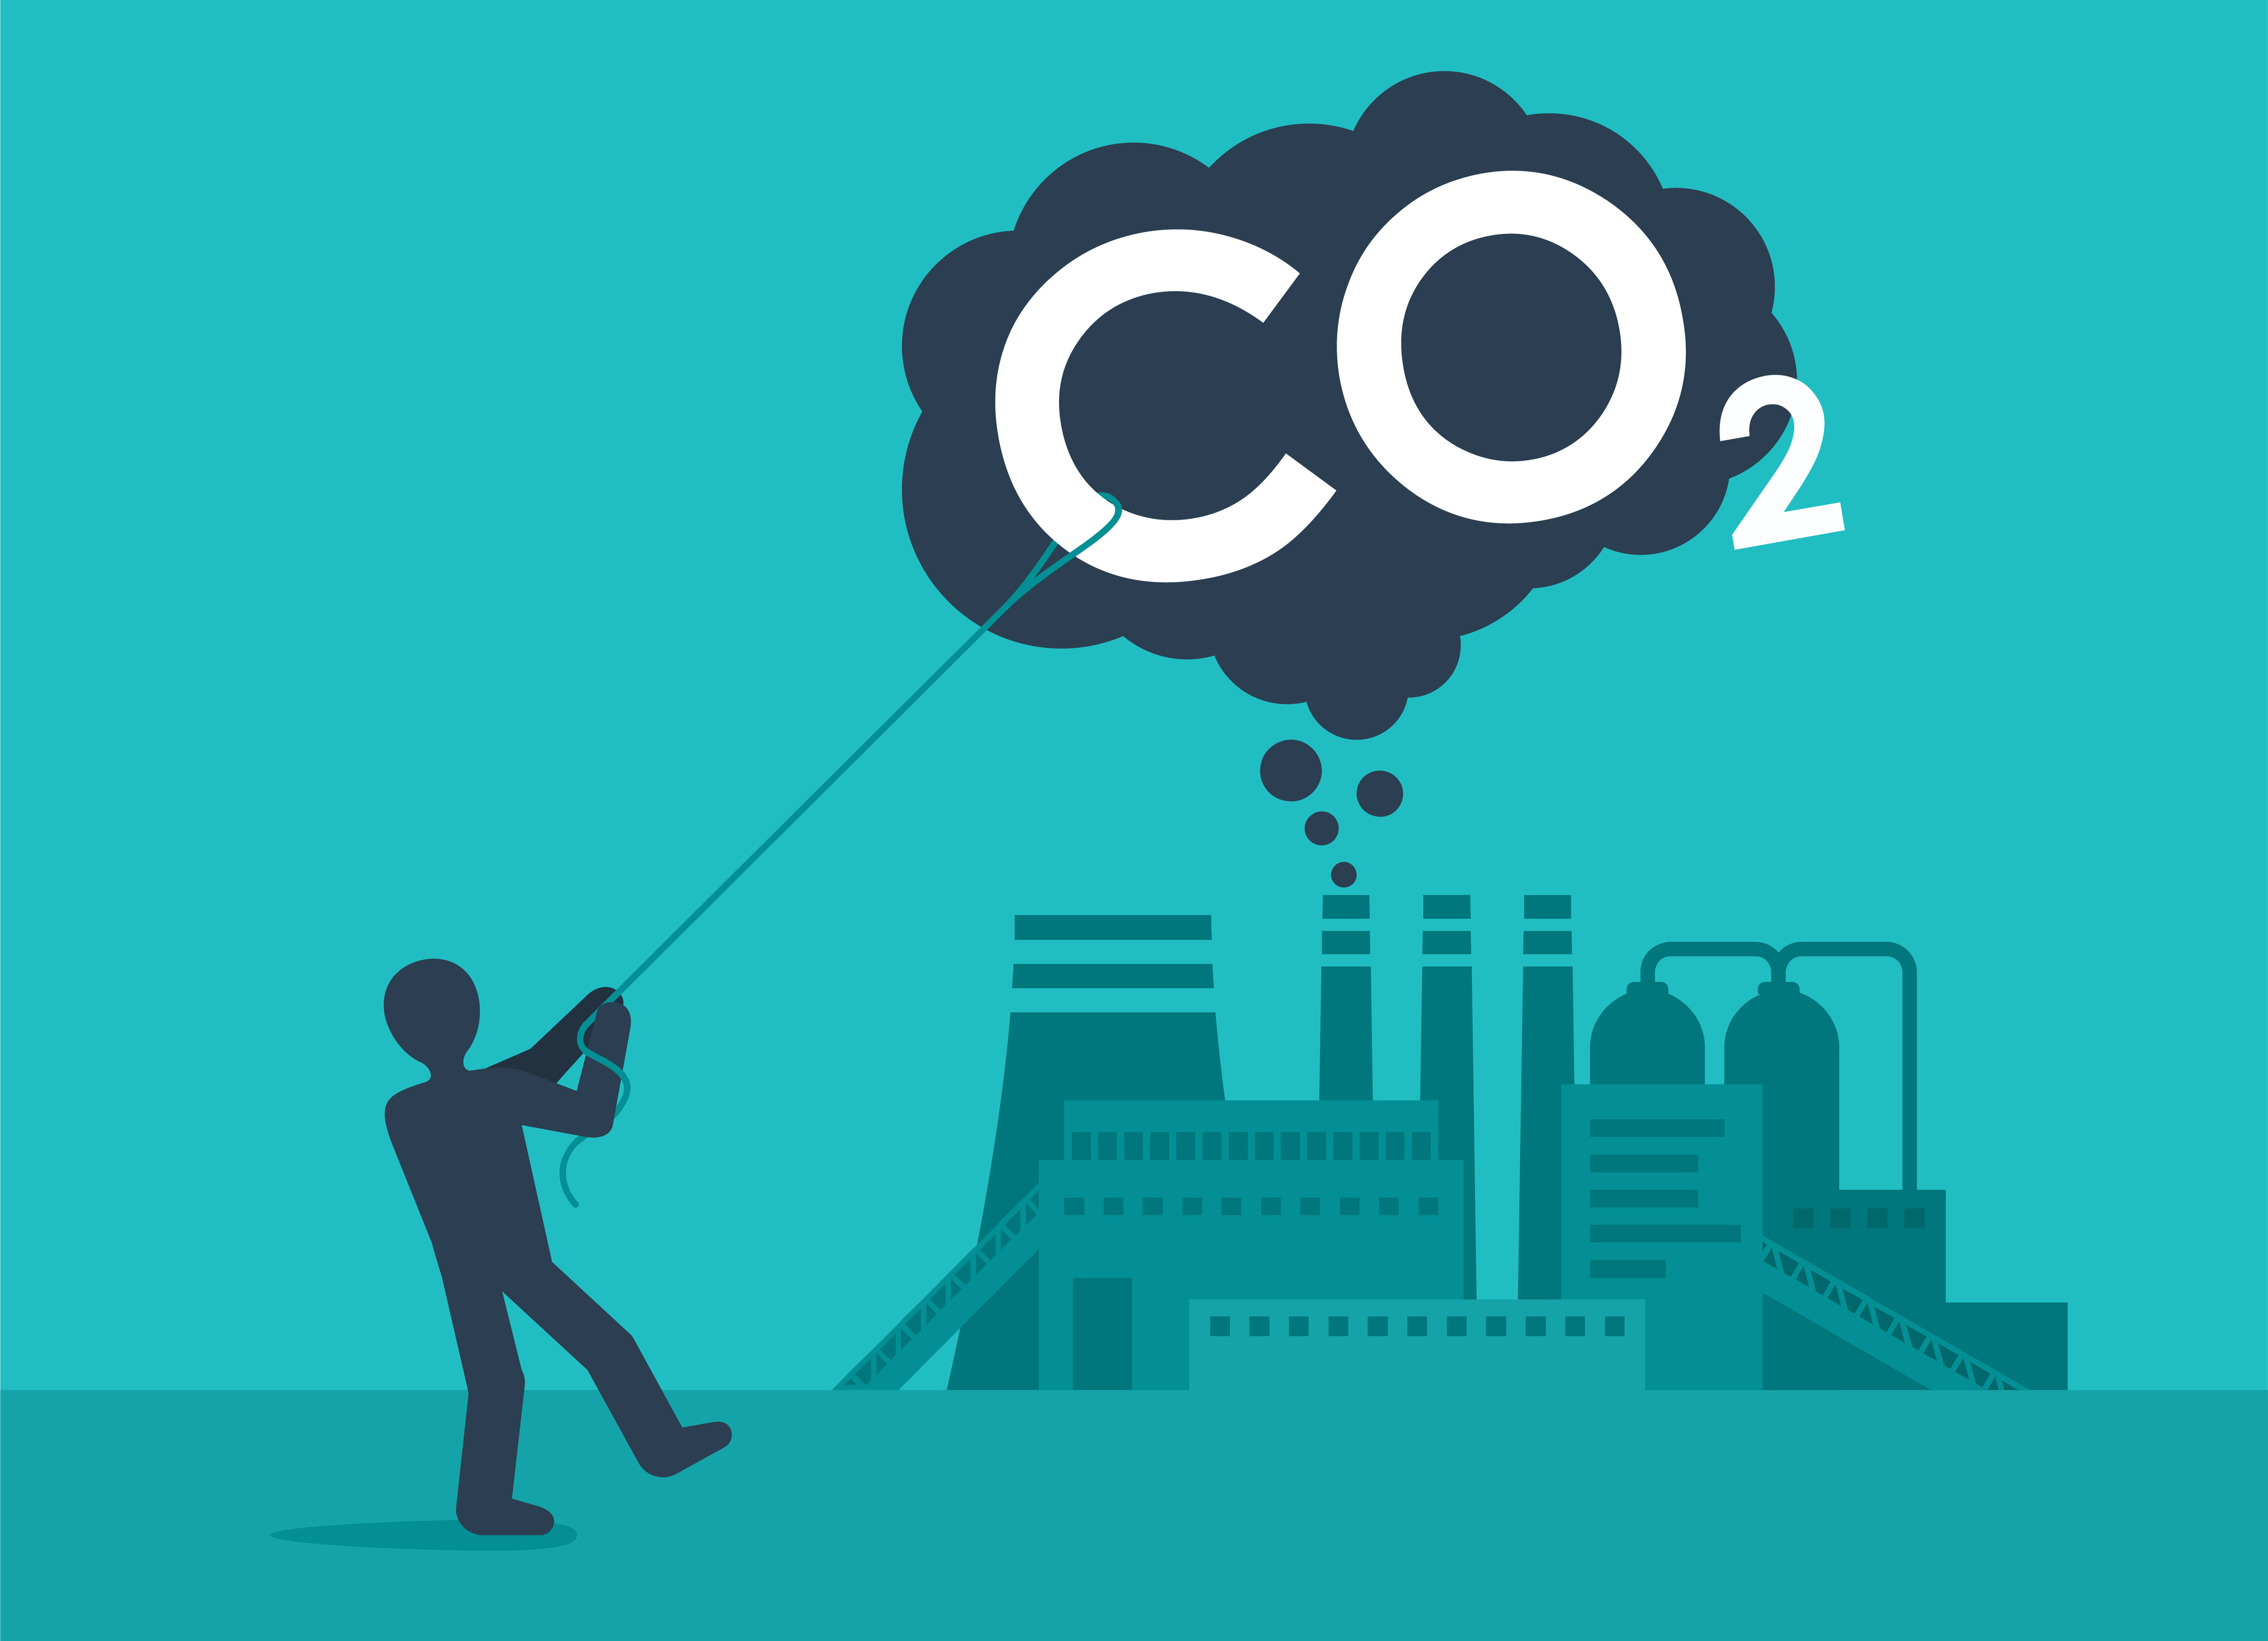 Person capturing carbon dioxide with a lasso as it comes out of a factory.